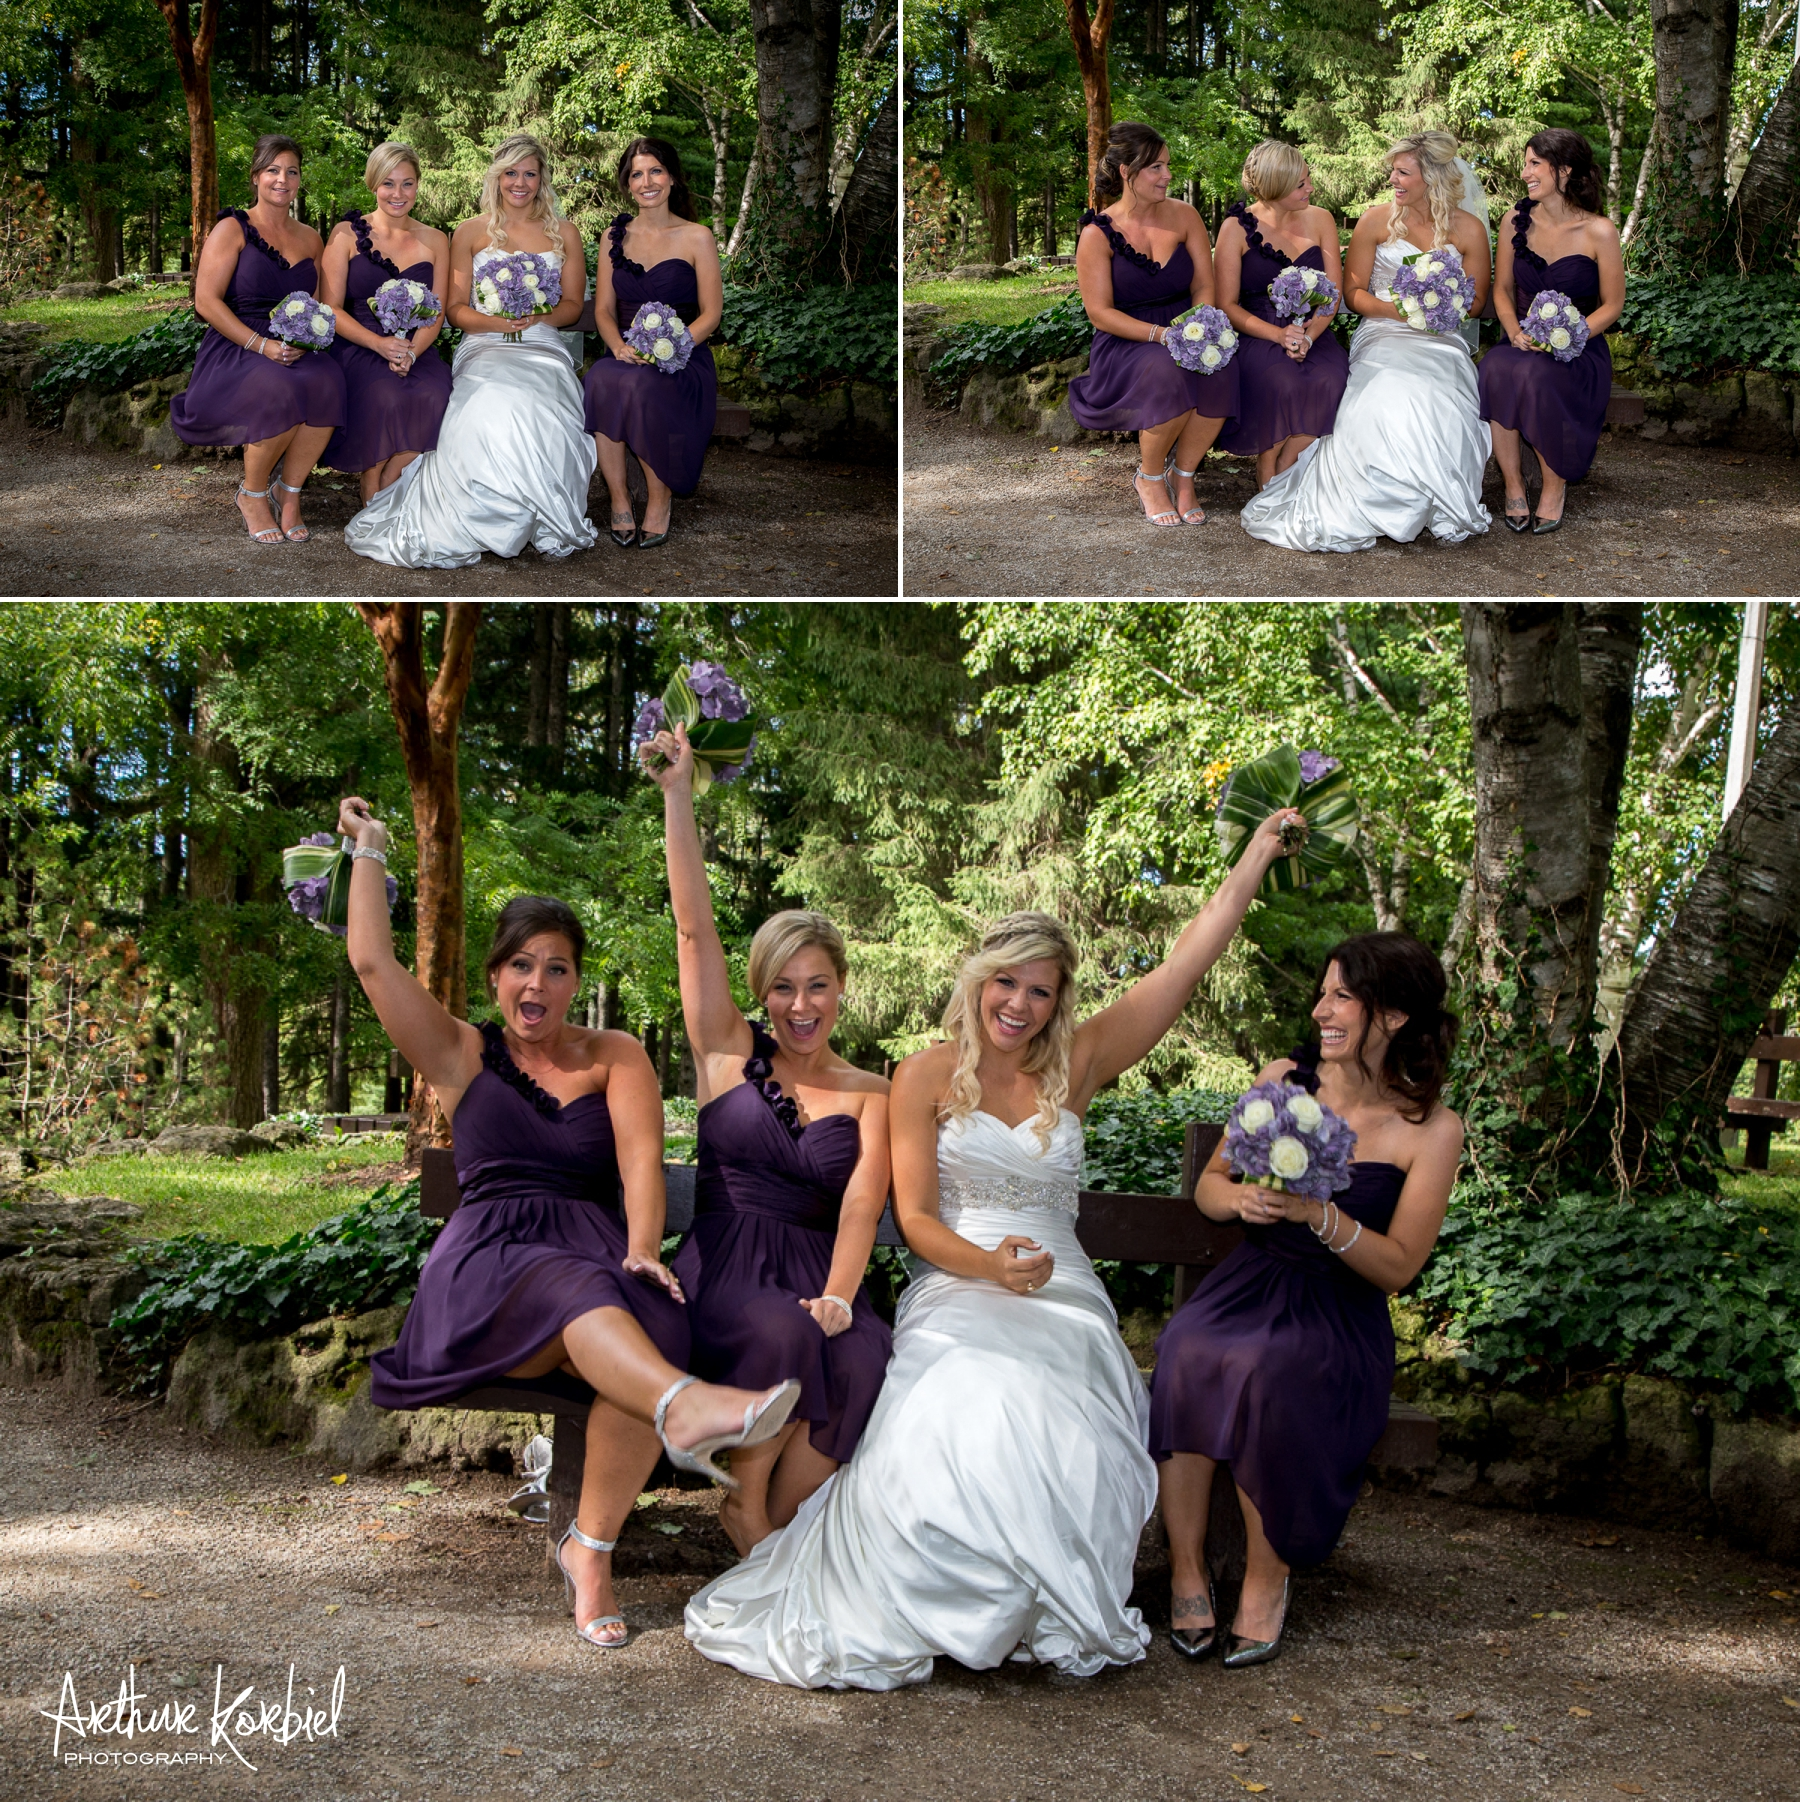 Arthur Korbiel Photography - London Wedding Photographer - Stone Willow Inn - St Marys & Stratford_002.jpg